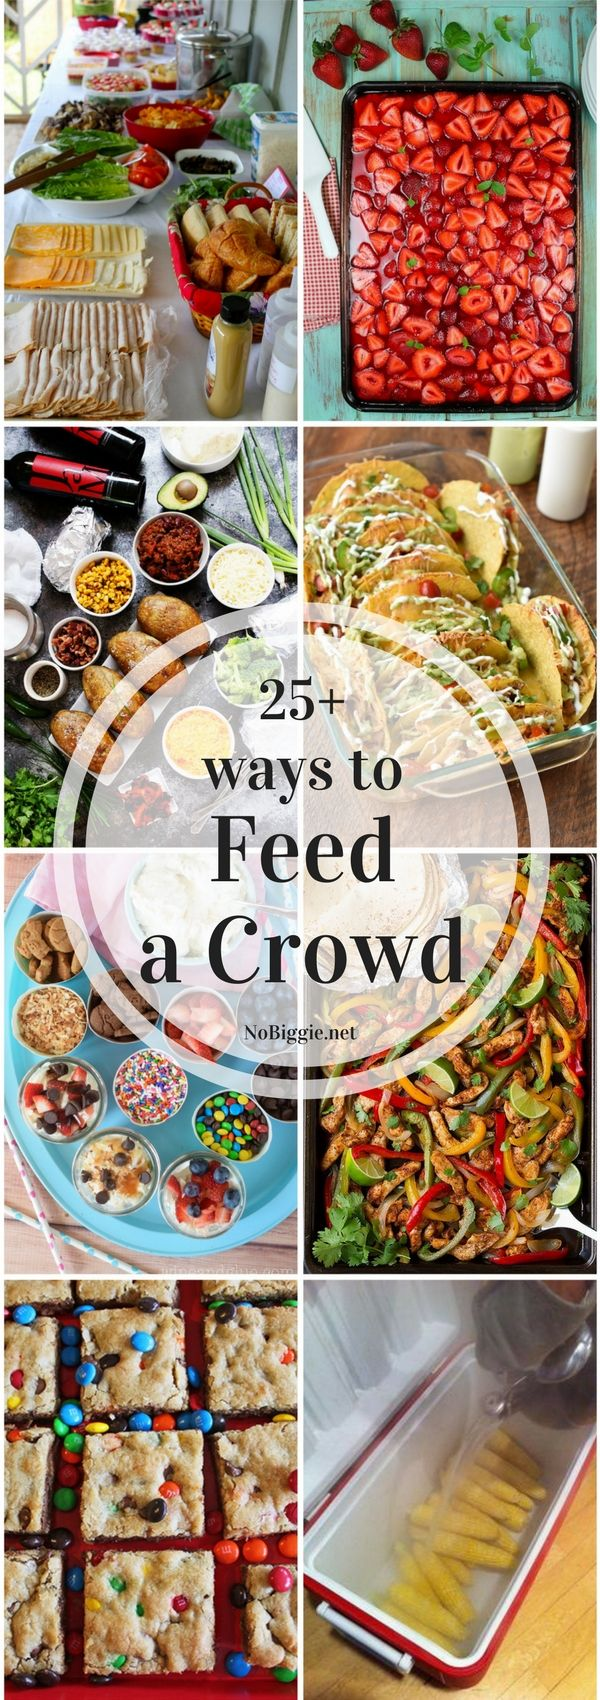 25+ ways to Feed a Crowd | NoBiggie.net